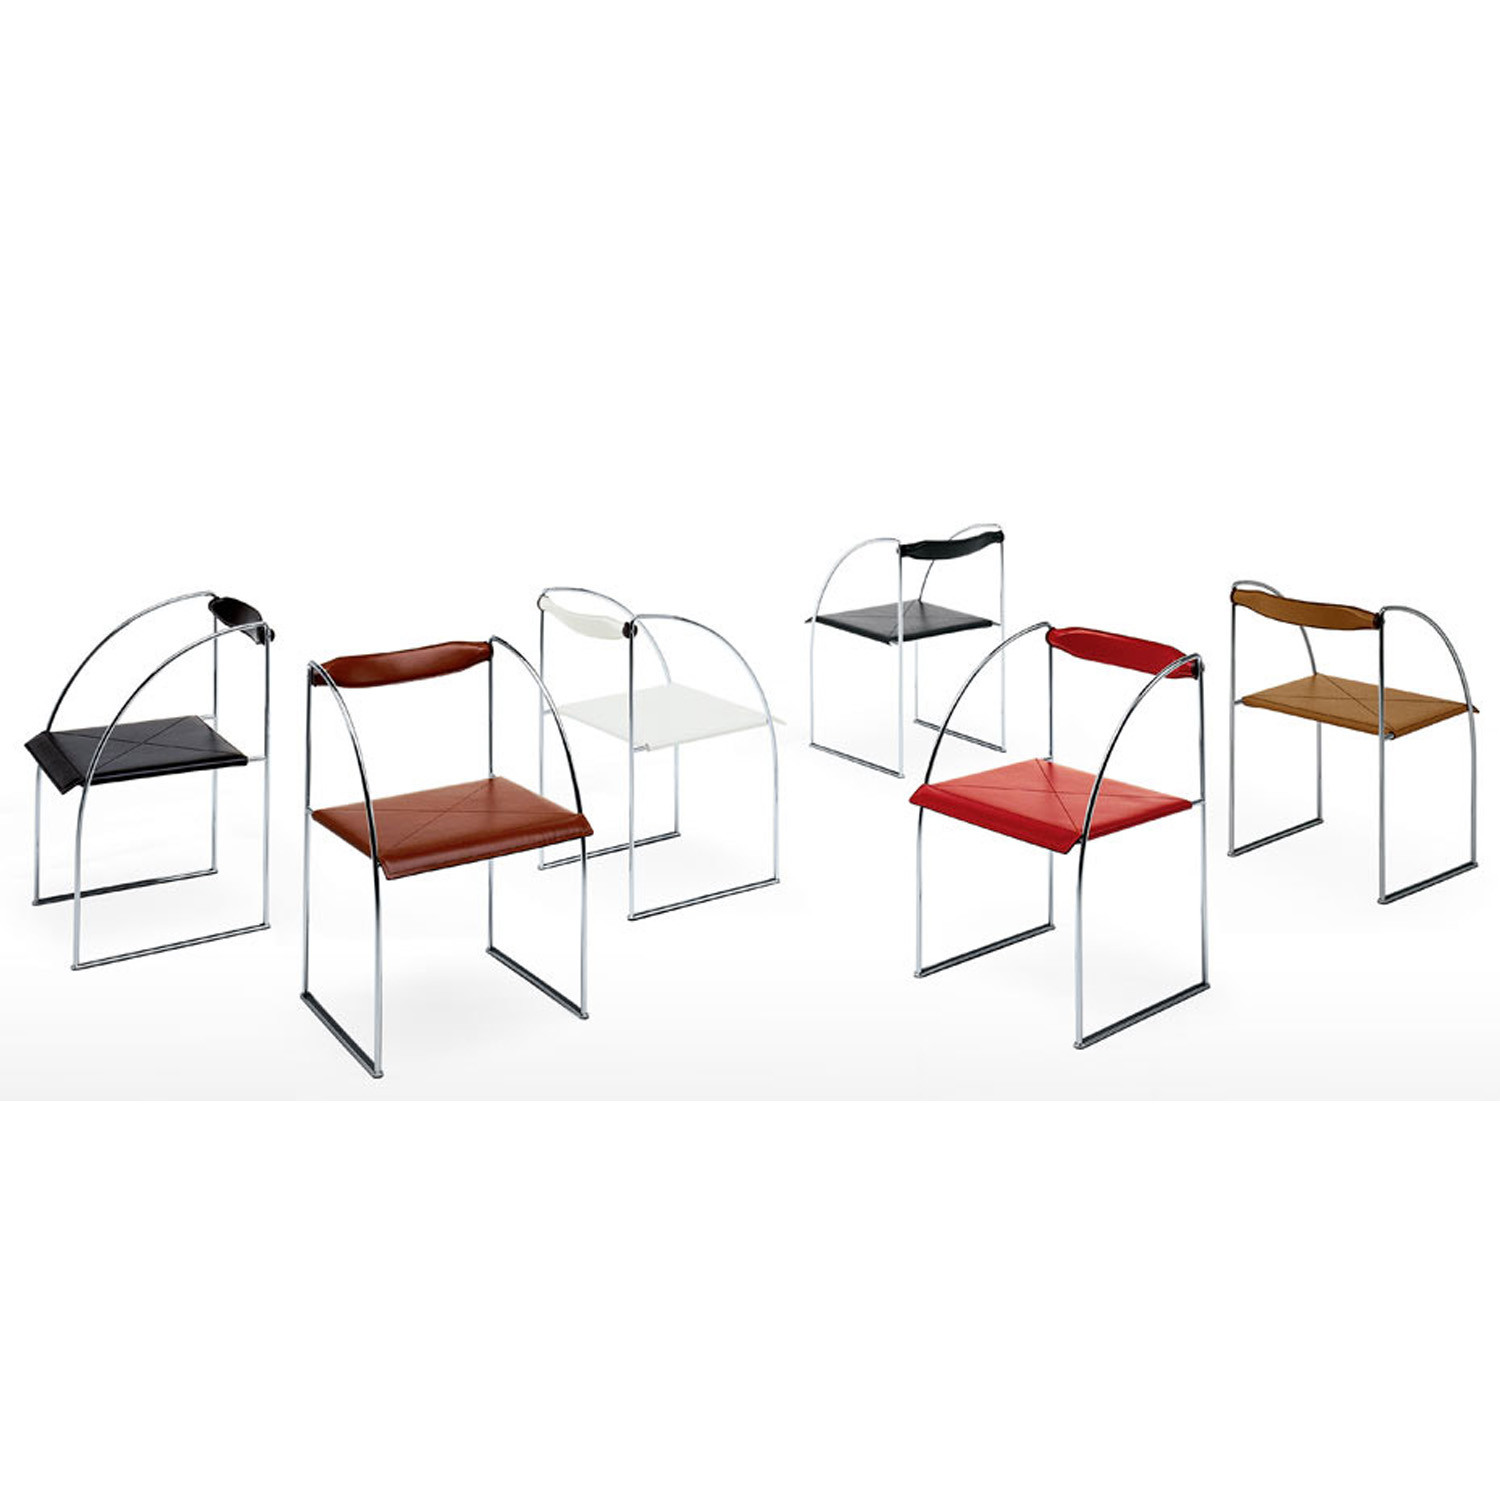 Patoz Chairs Range